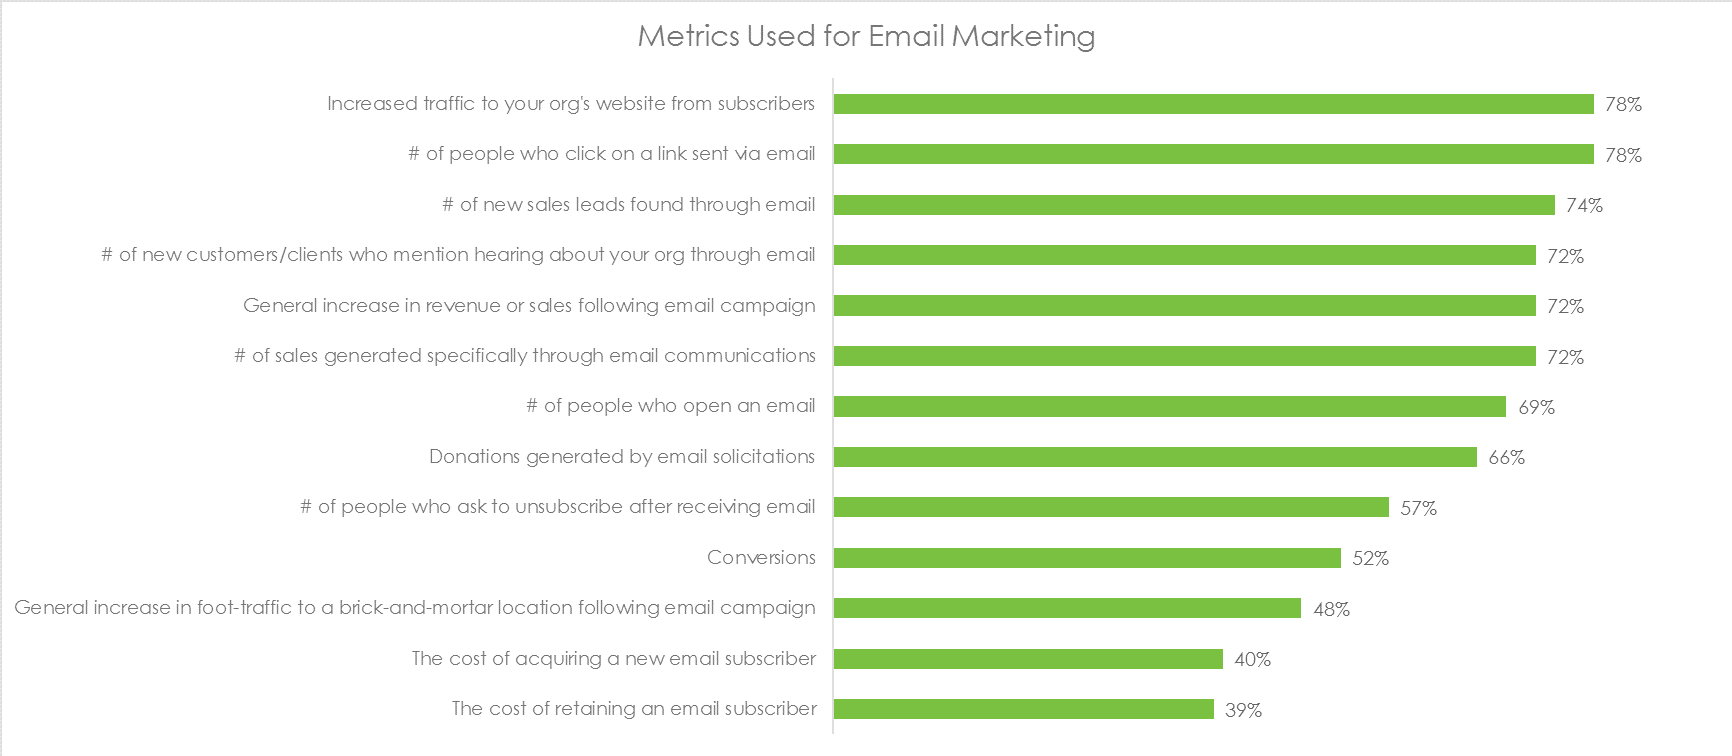 metrics used for email marketing